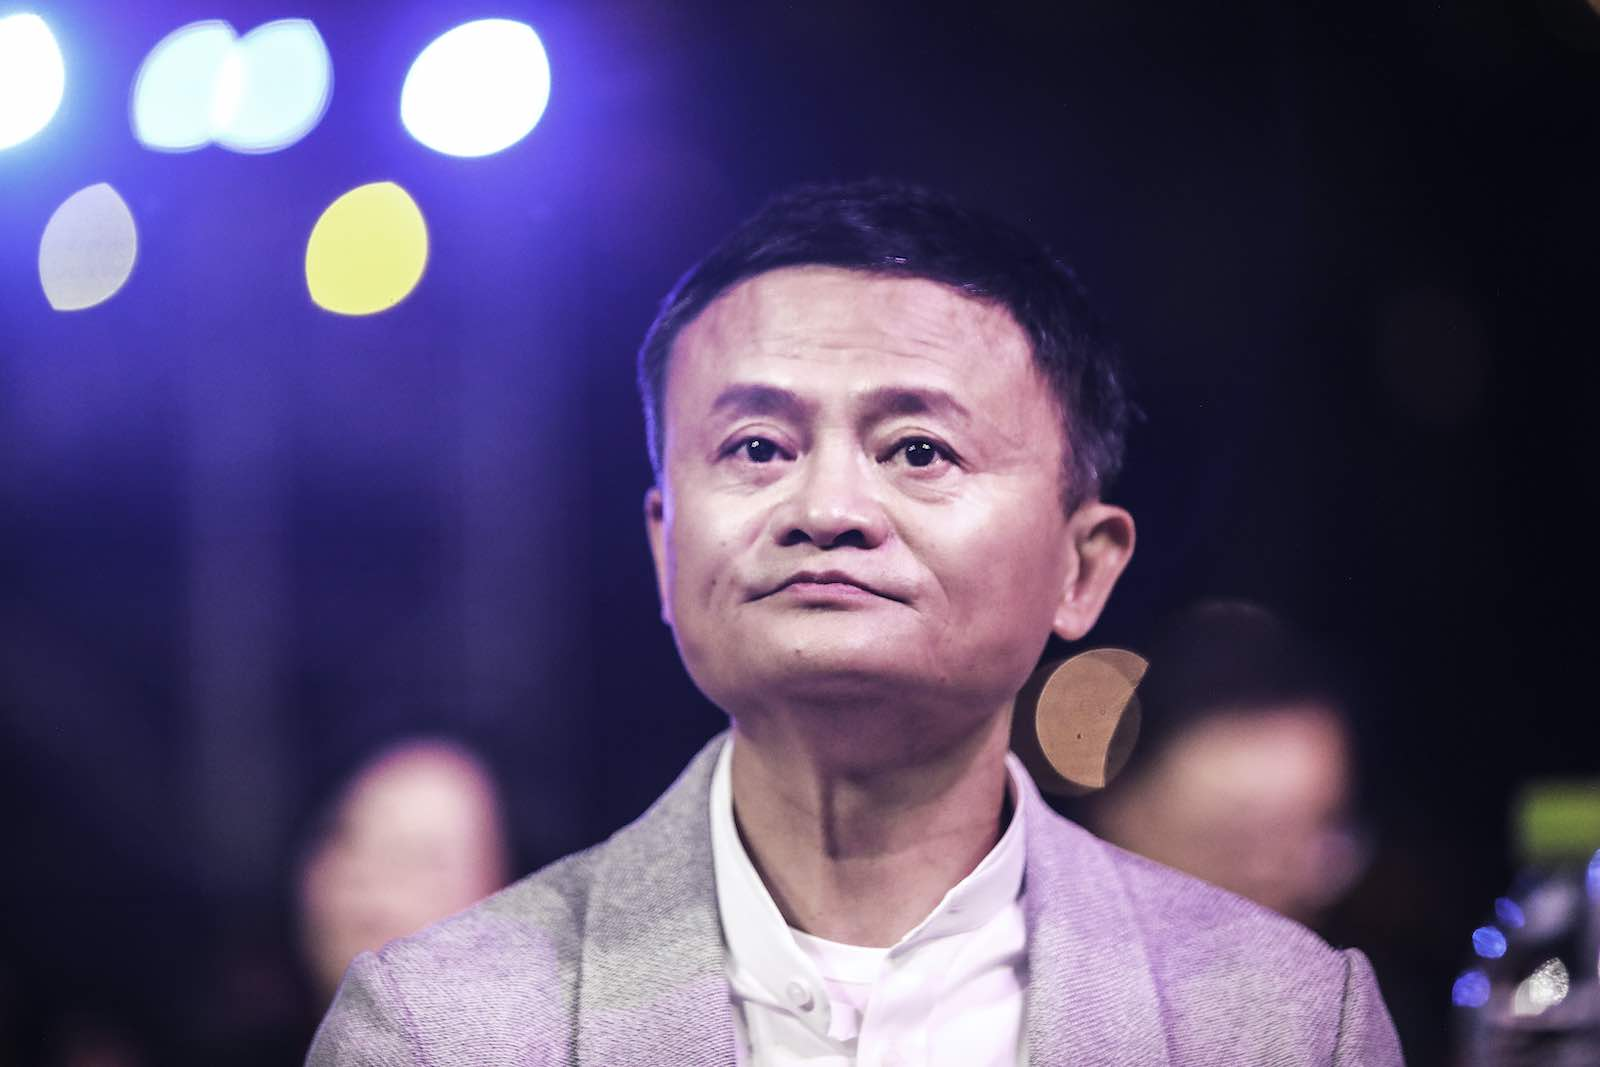 Founder of Alibaba Group Jack Ma in Sanya, China, in January 2020 at the ceremony for the Jack Ma Rural Teachers Award (Wang HE/Getty Images)